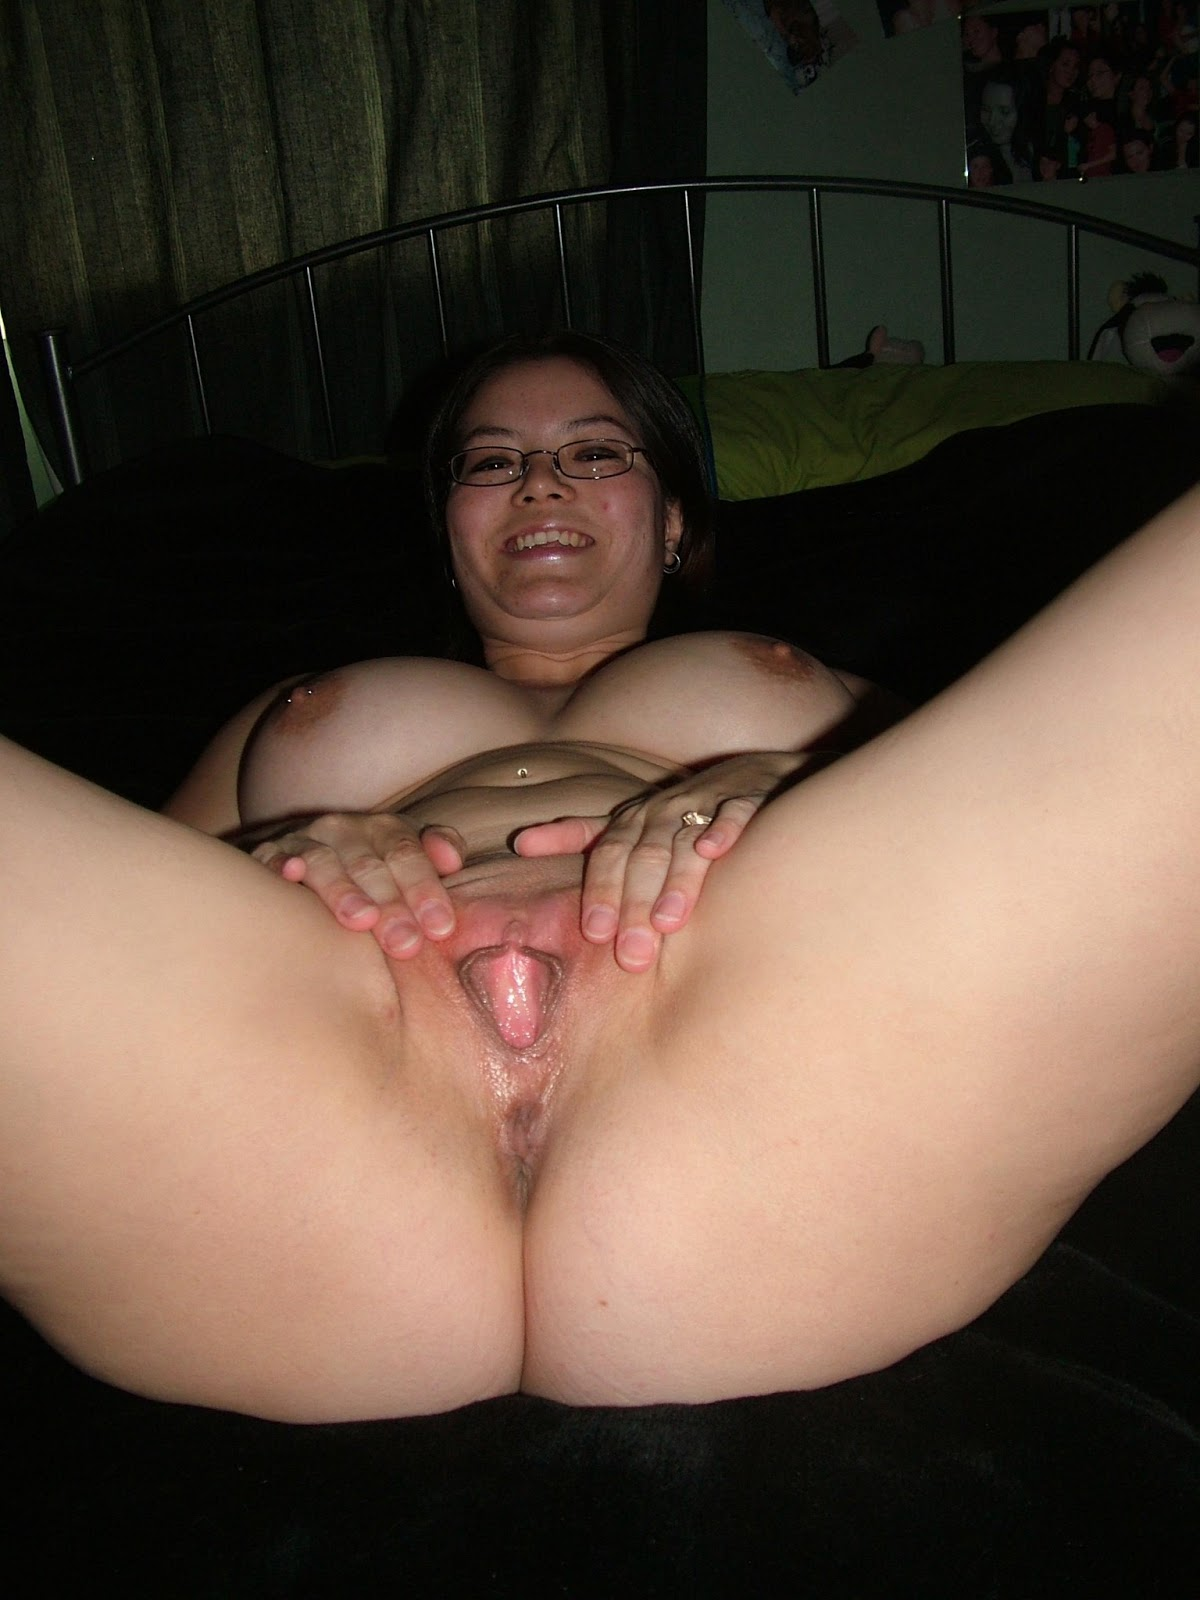 Much Hot amateur latina pussy